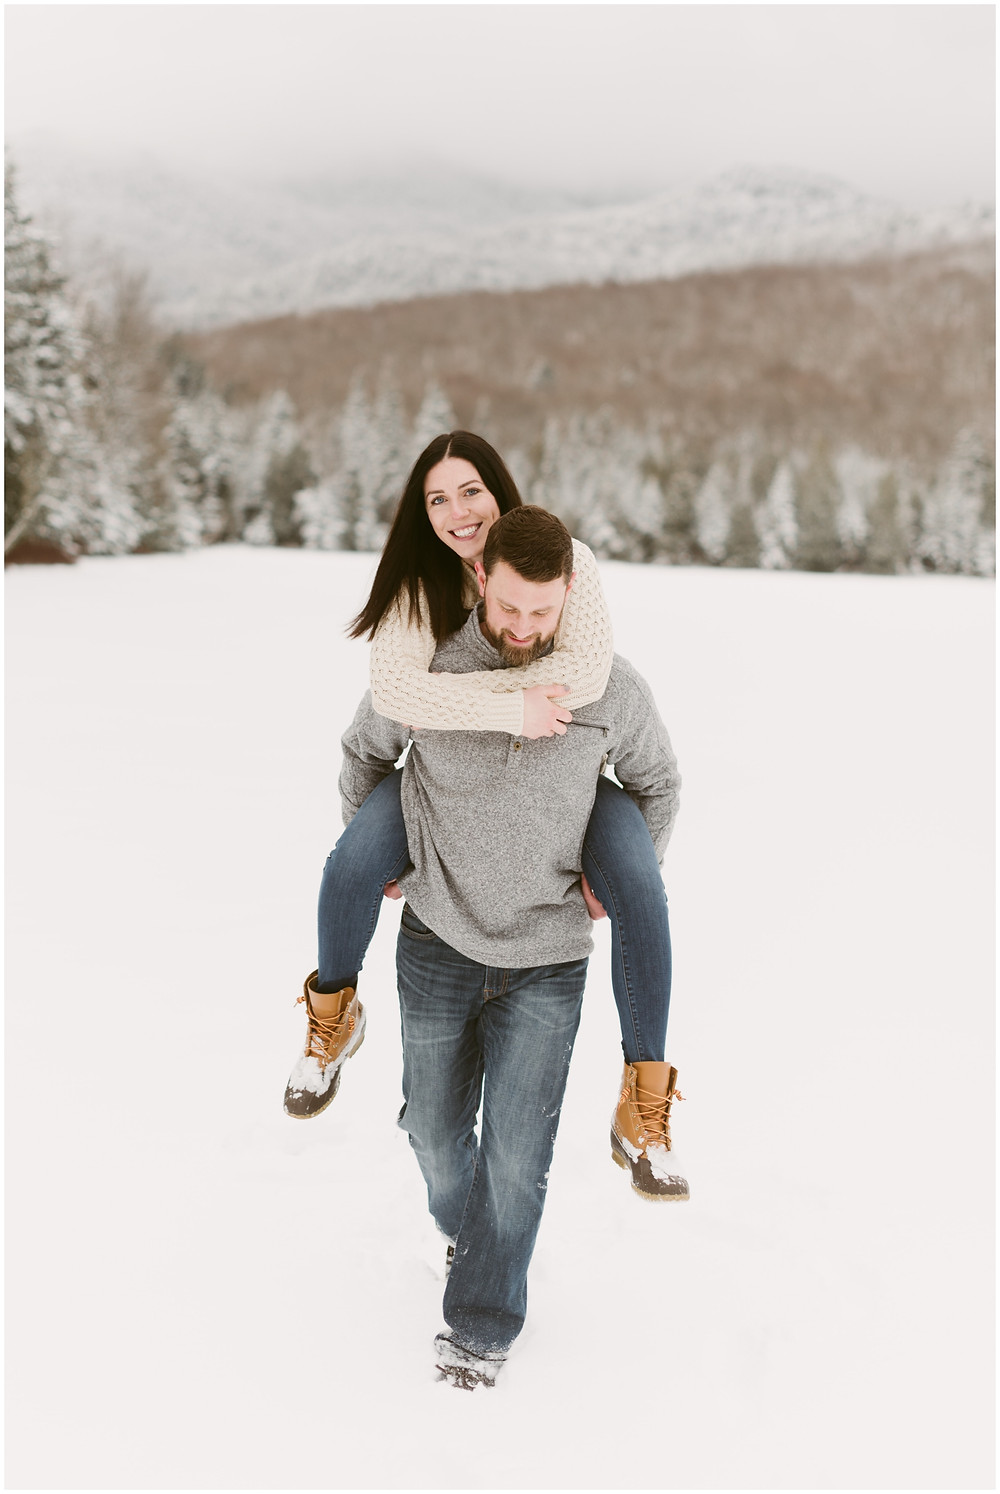 Winter engagement session in the Adirondacks by Mountainaire Gatherings